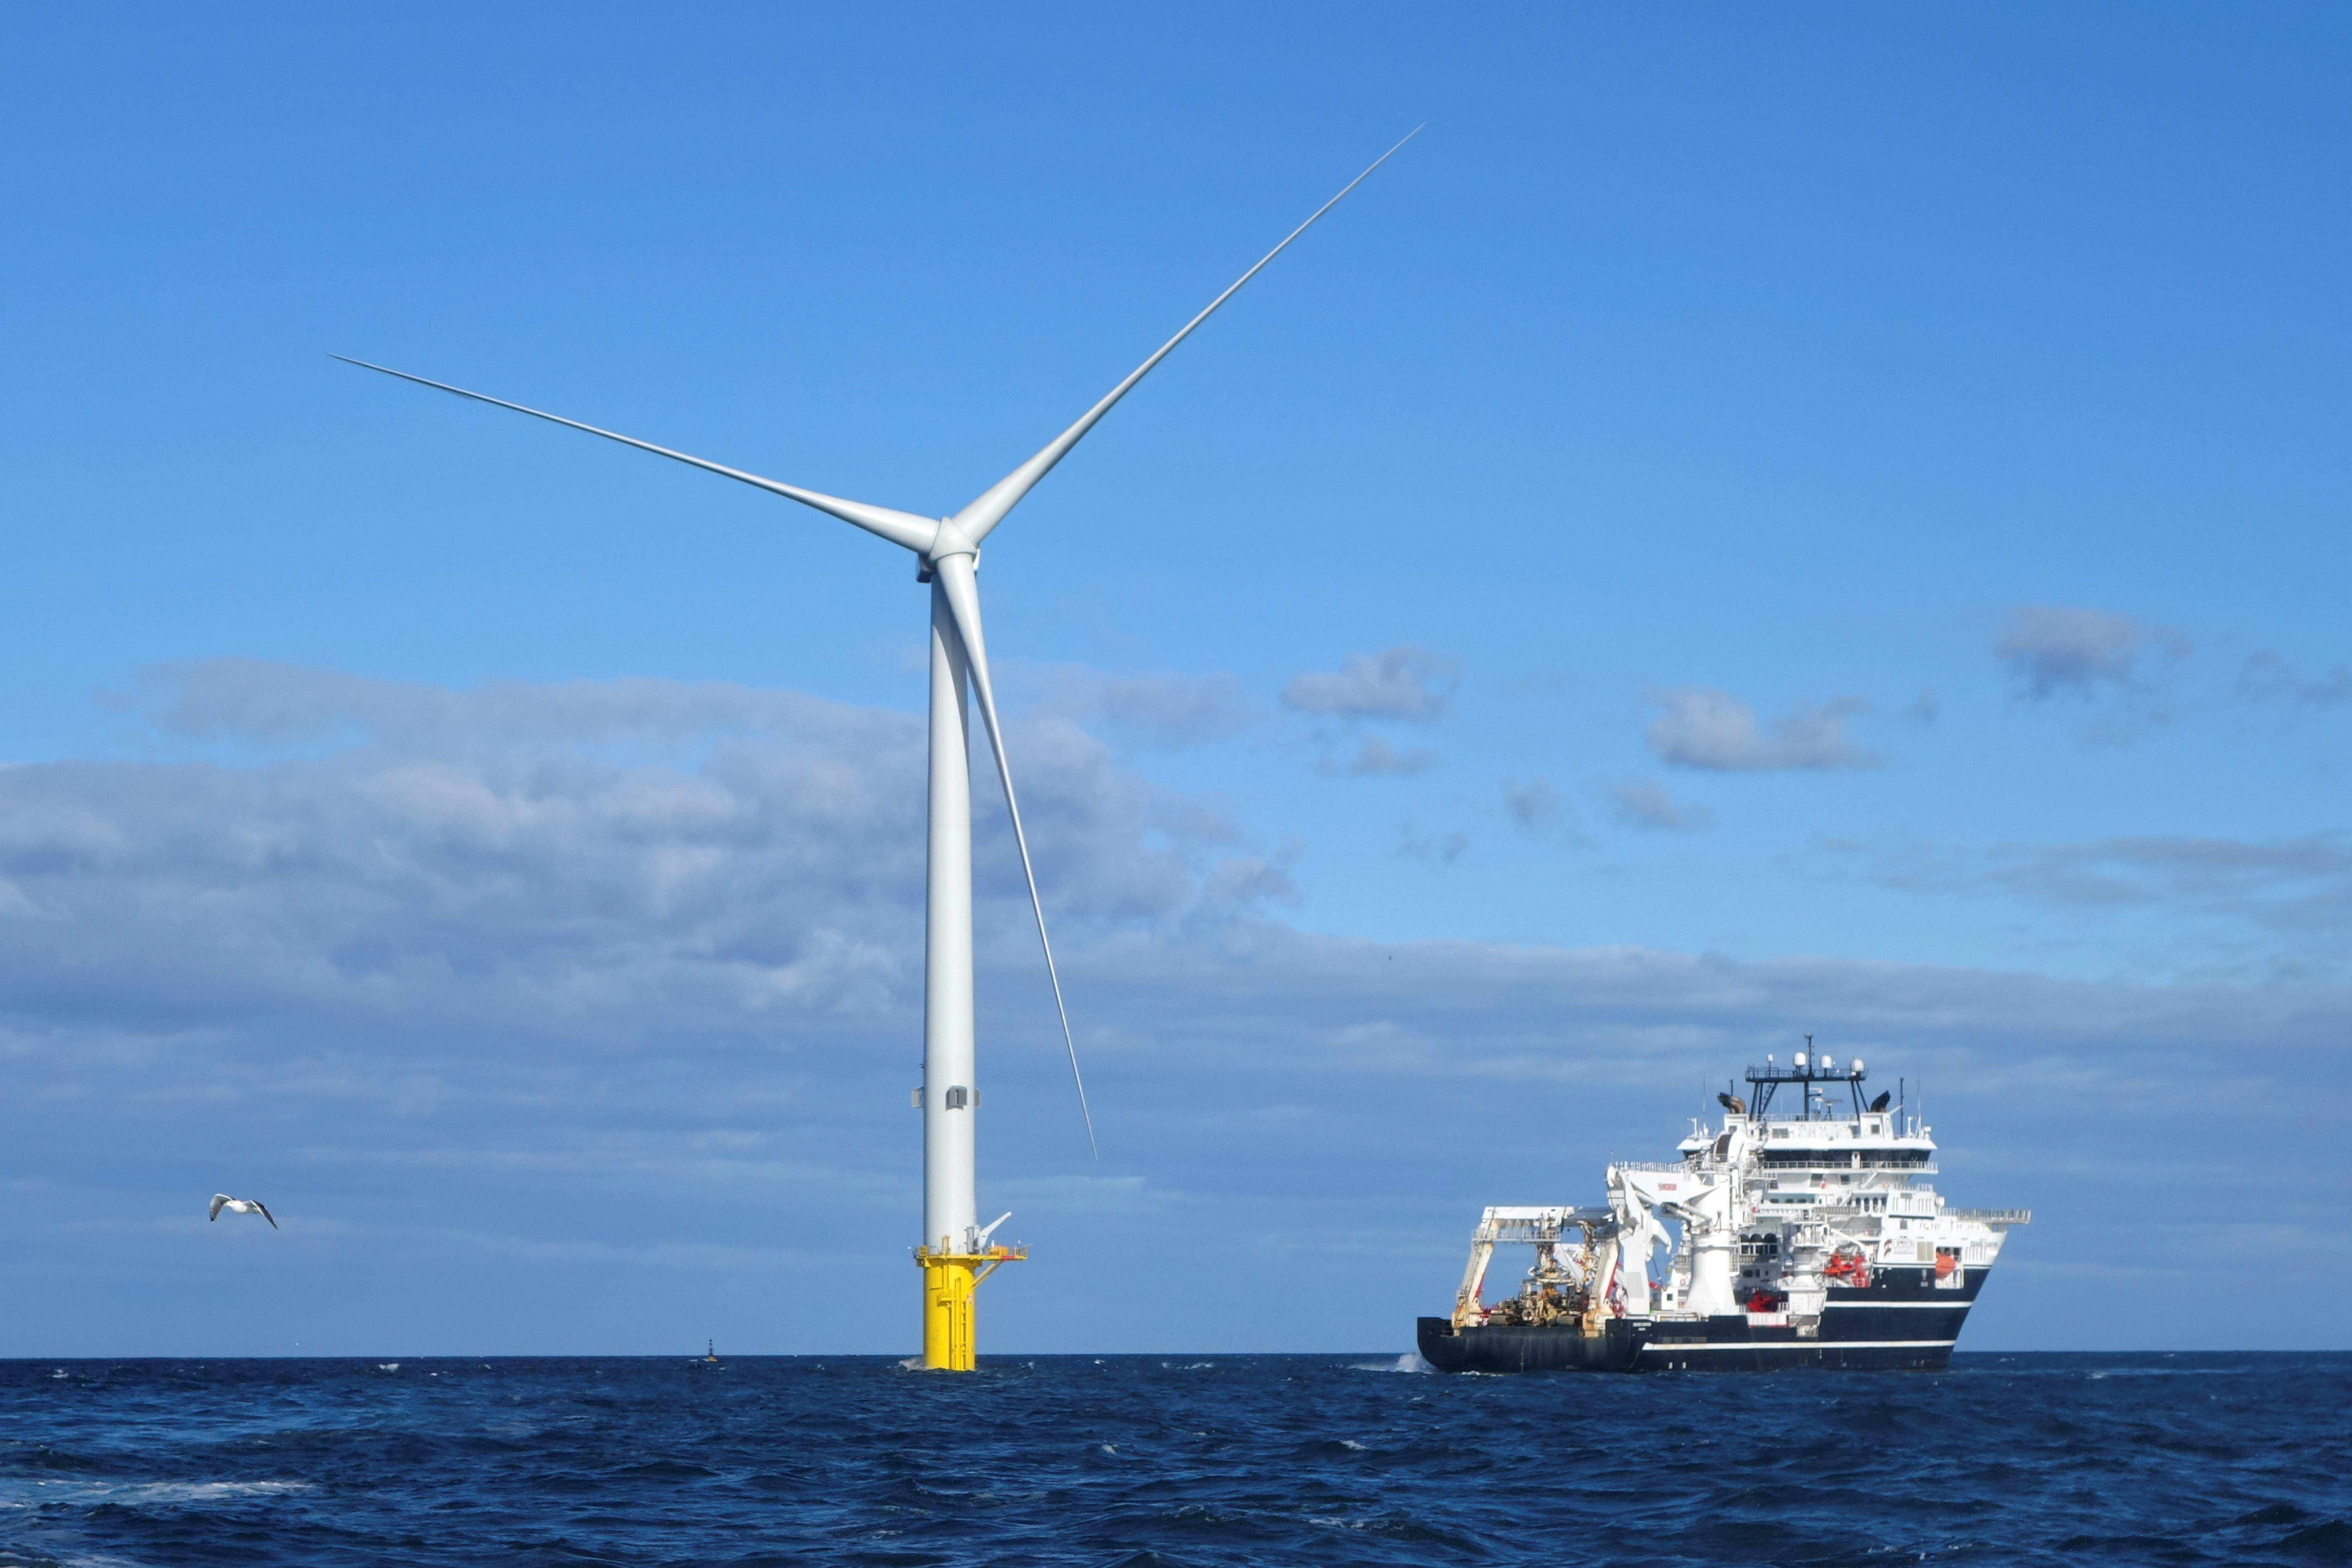 WEB BRITAIN-ENERGY-ELECTRICITY-WIND-TURBINE In this Oct. 5 file photo, turbines at The Blyth Offshore Demonstrator Wind Farm built by EDF Energy Renewables are seen off the coast of Blyth, north of Newcastle-upon-Tyne, in northeast England.